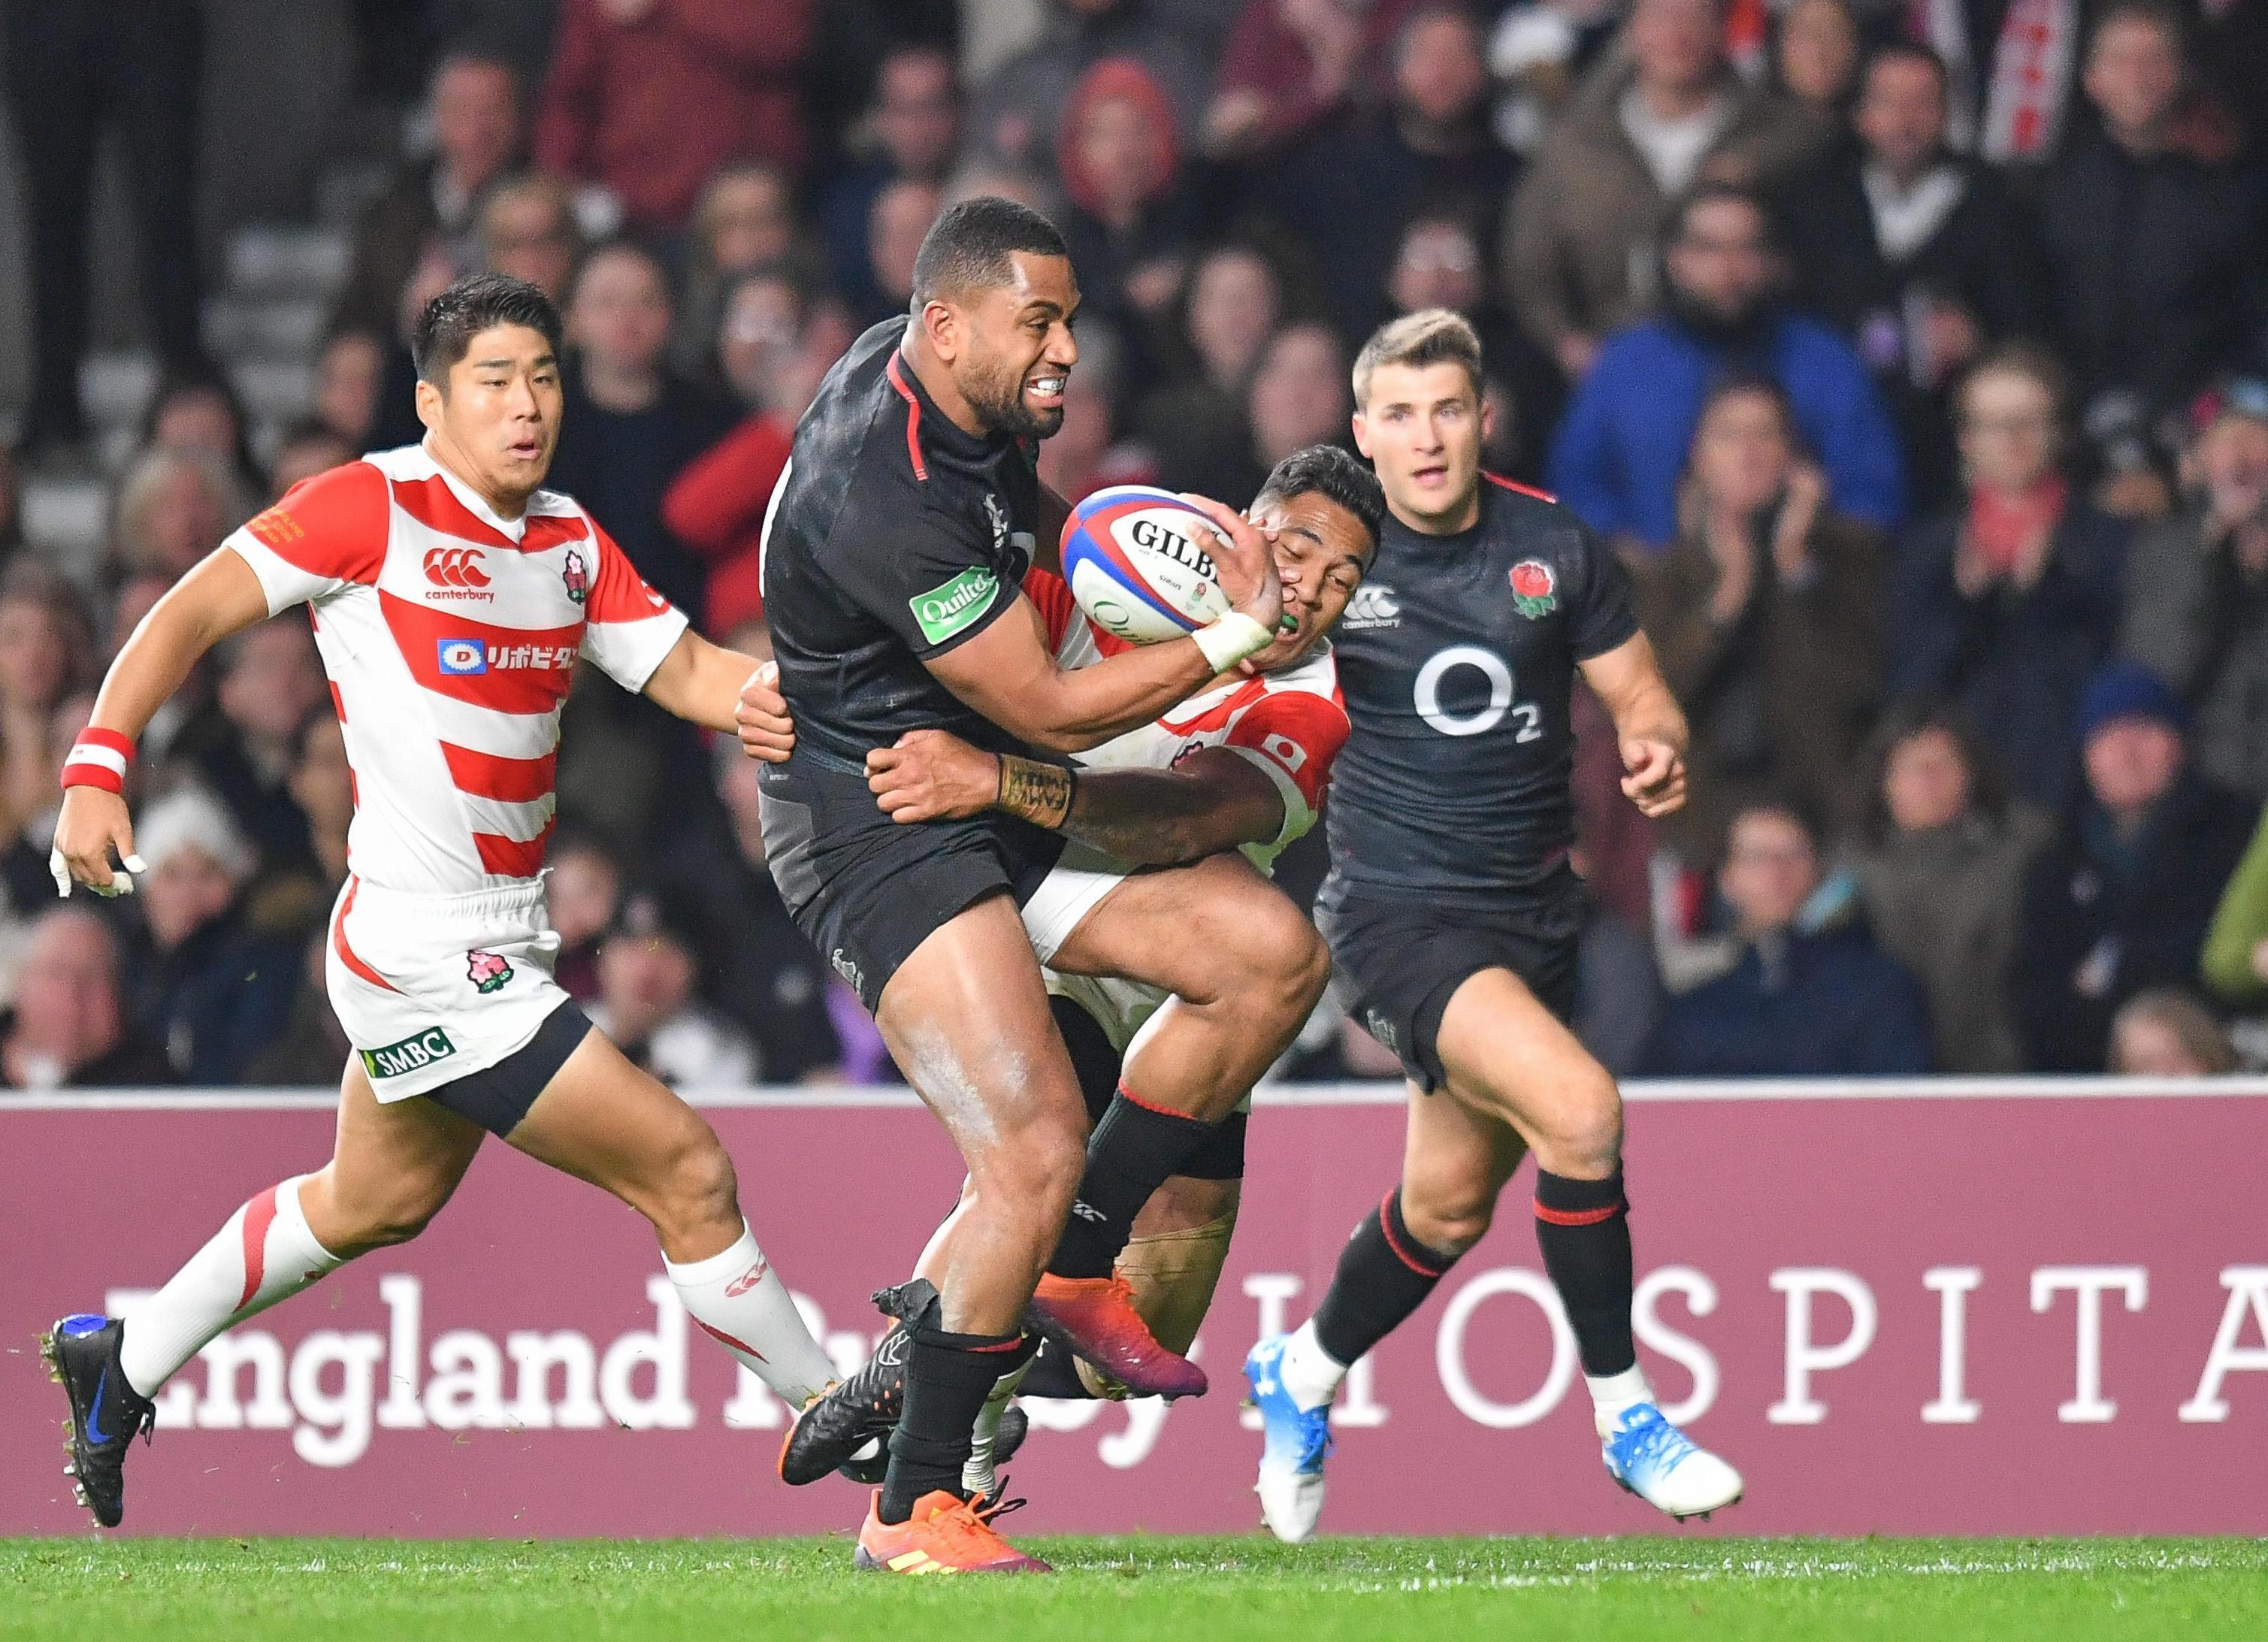 Joe Cokanasiga touches down as England romped home in the second half